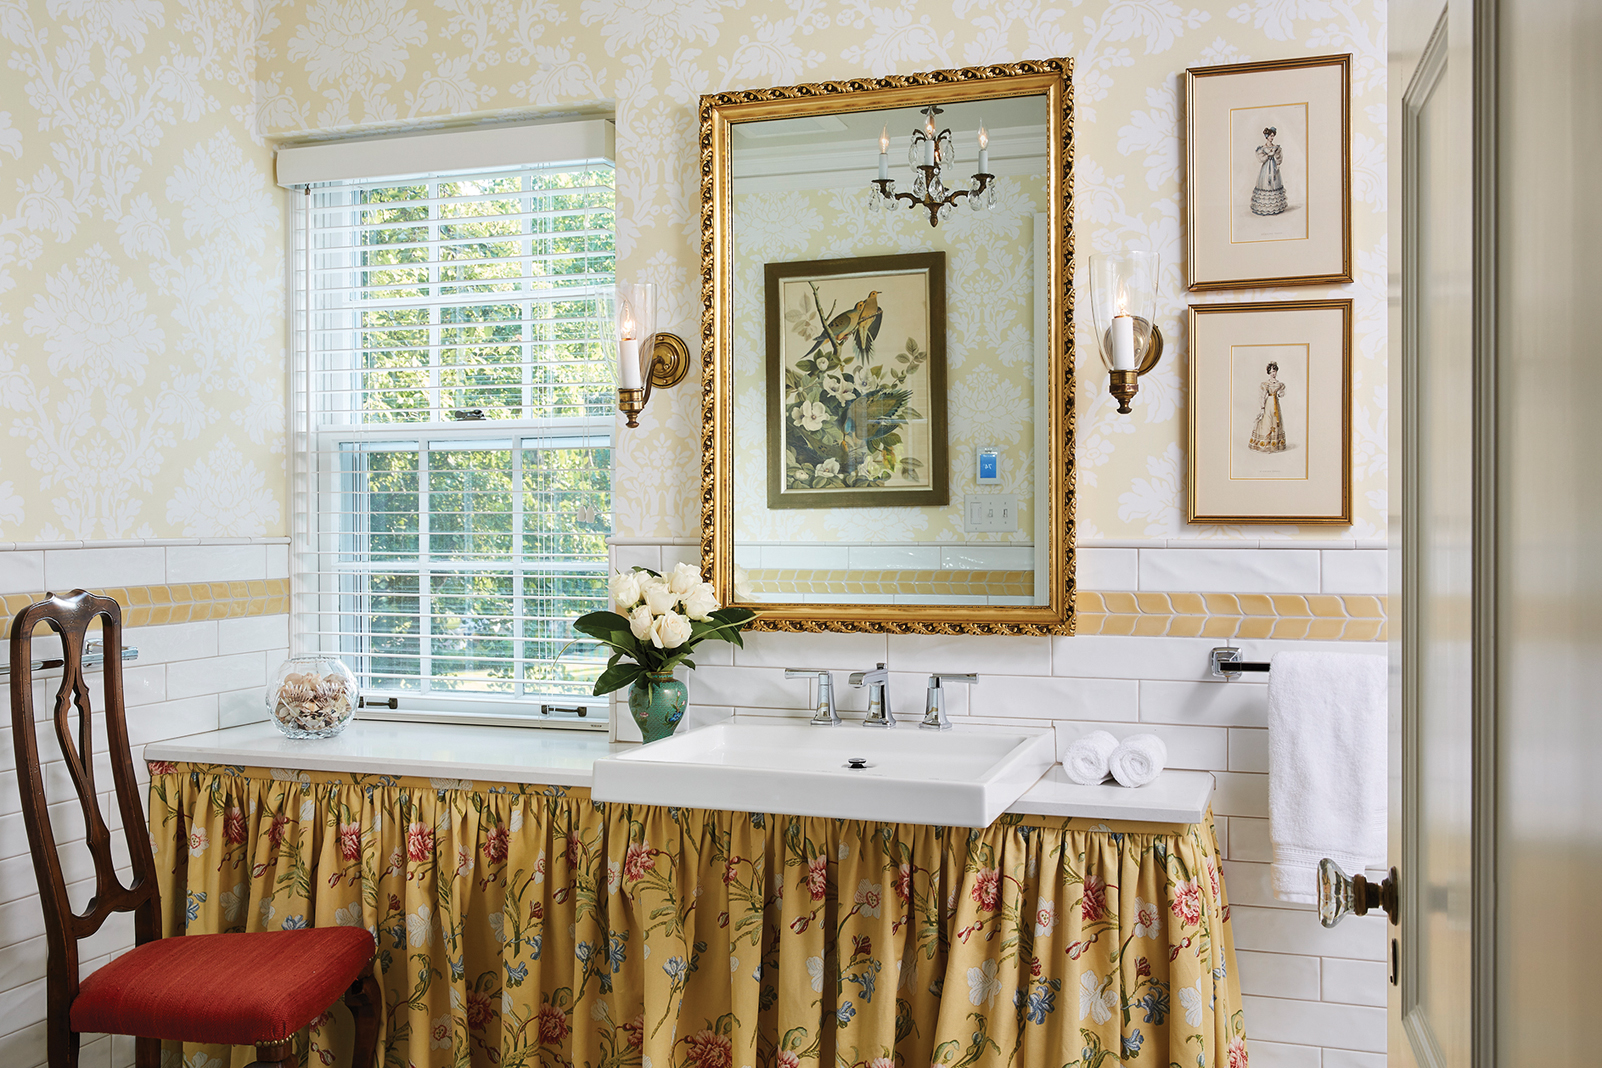 In the second-floor bathroom, Nature is further celebrated with floral patterns and audubon prints.